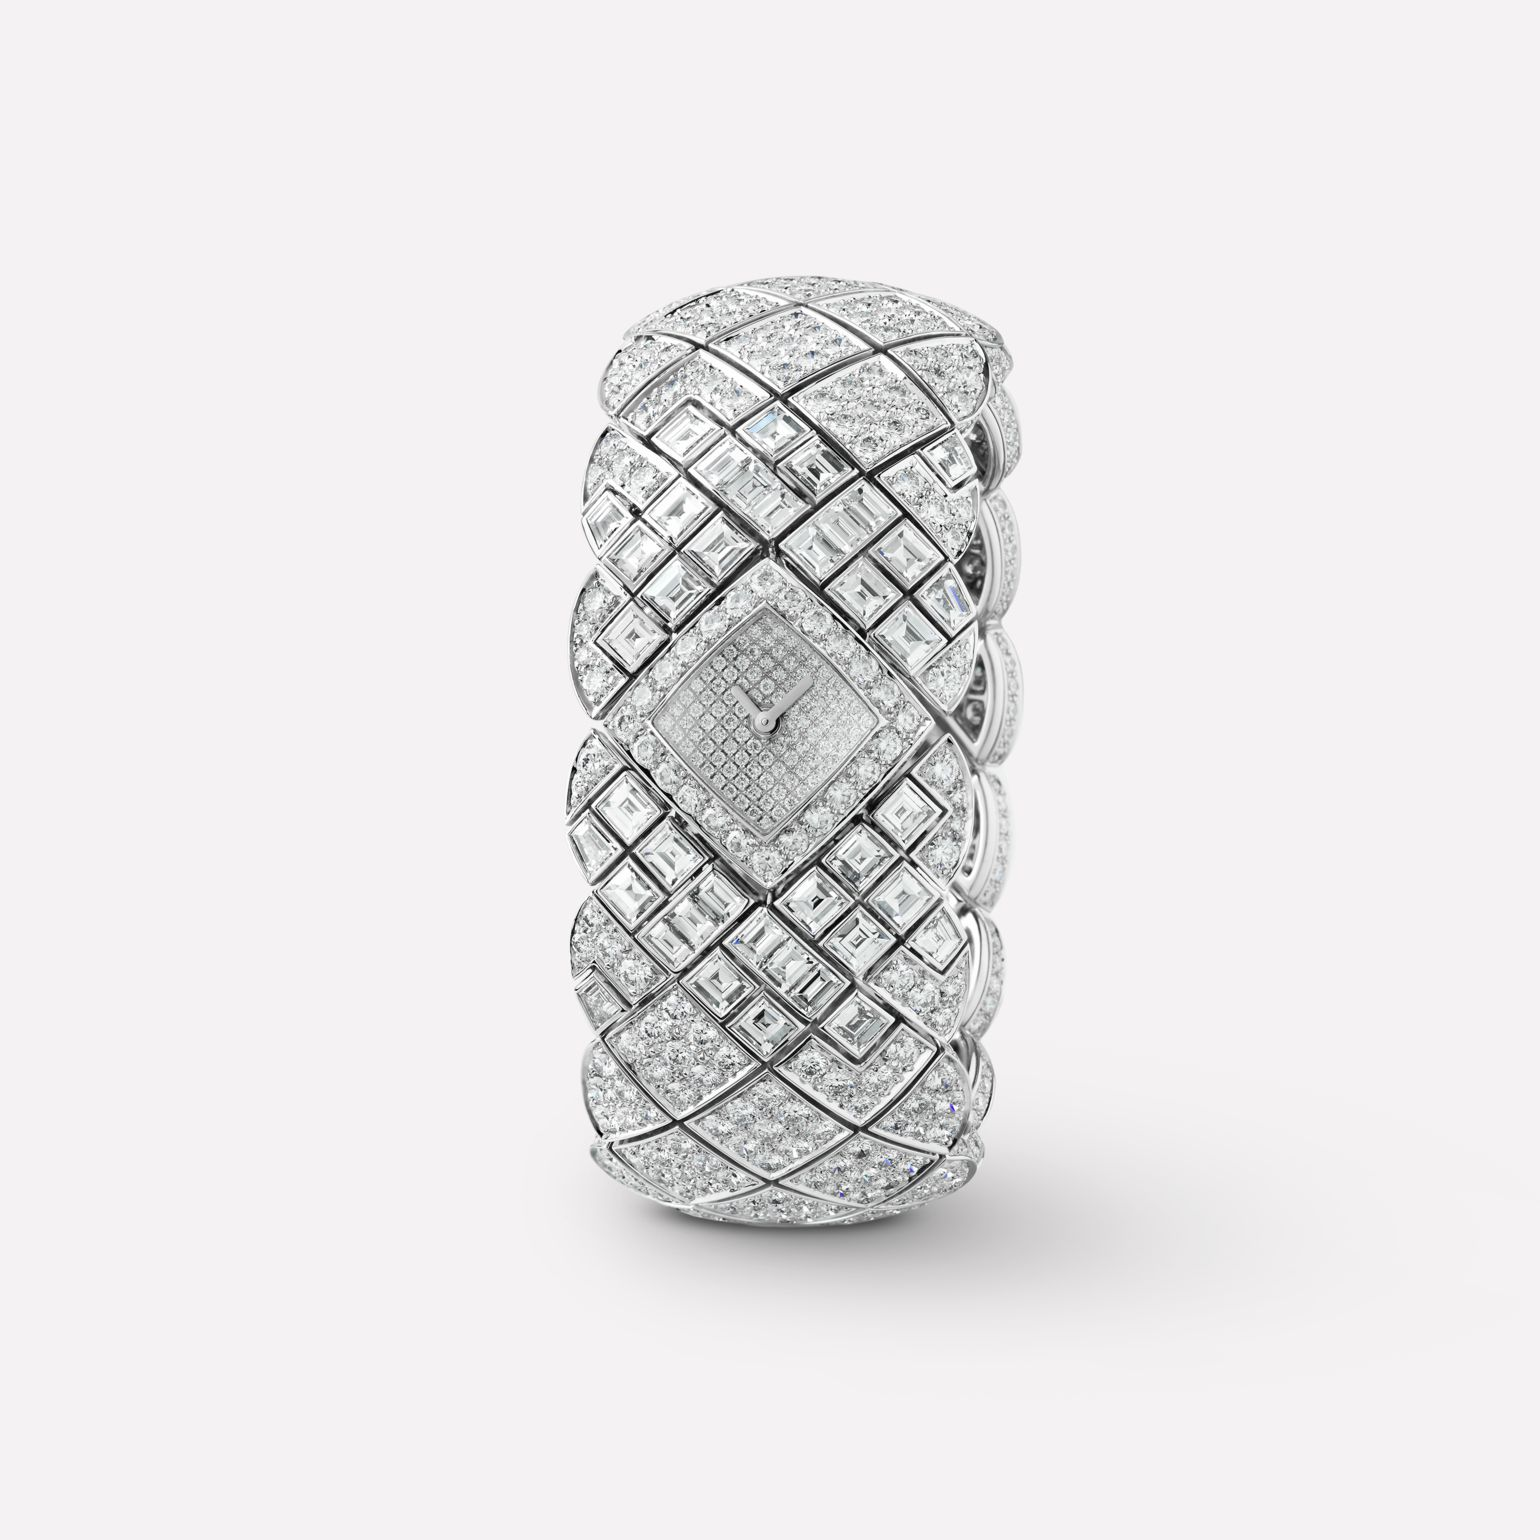 Matelassée Jewelry Watch Quilted motif cuff, in 18K white gold and diamonds